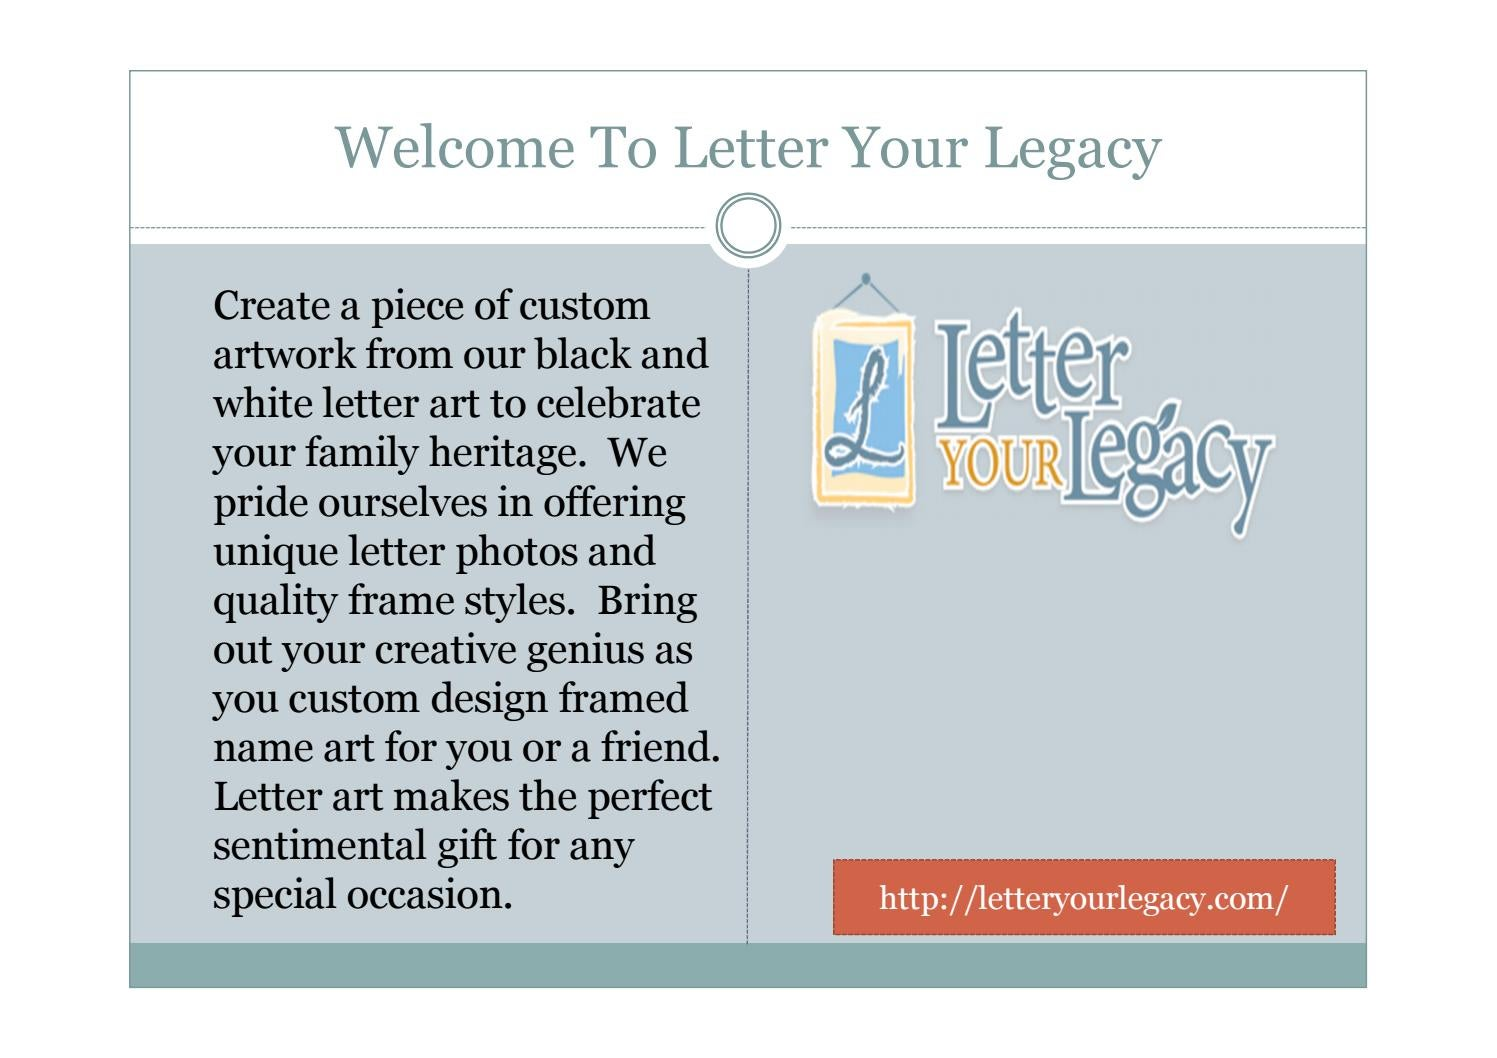 Letter Your Legacy Custom Letter Art By Amalie Benjamin  Issuu